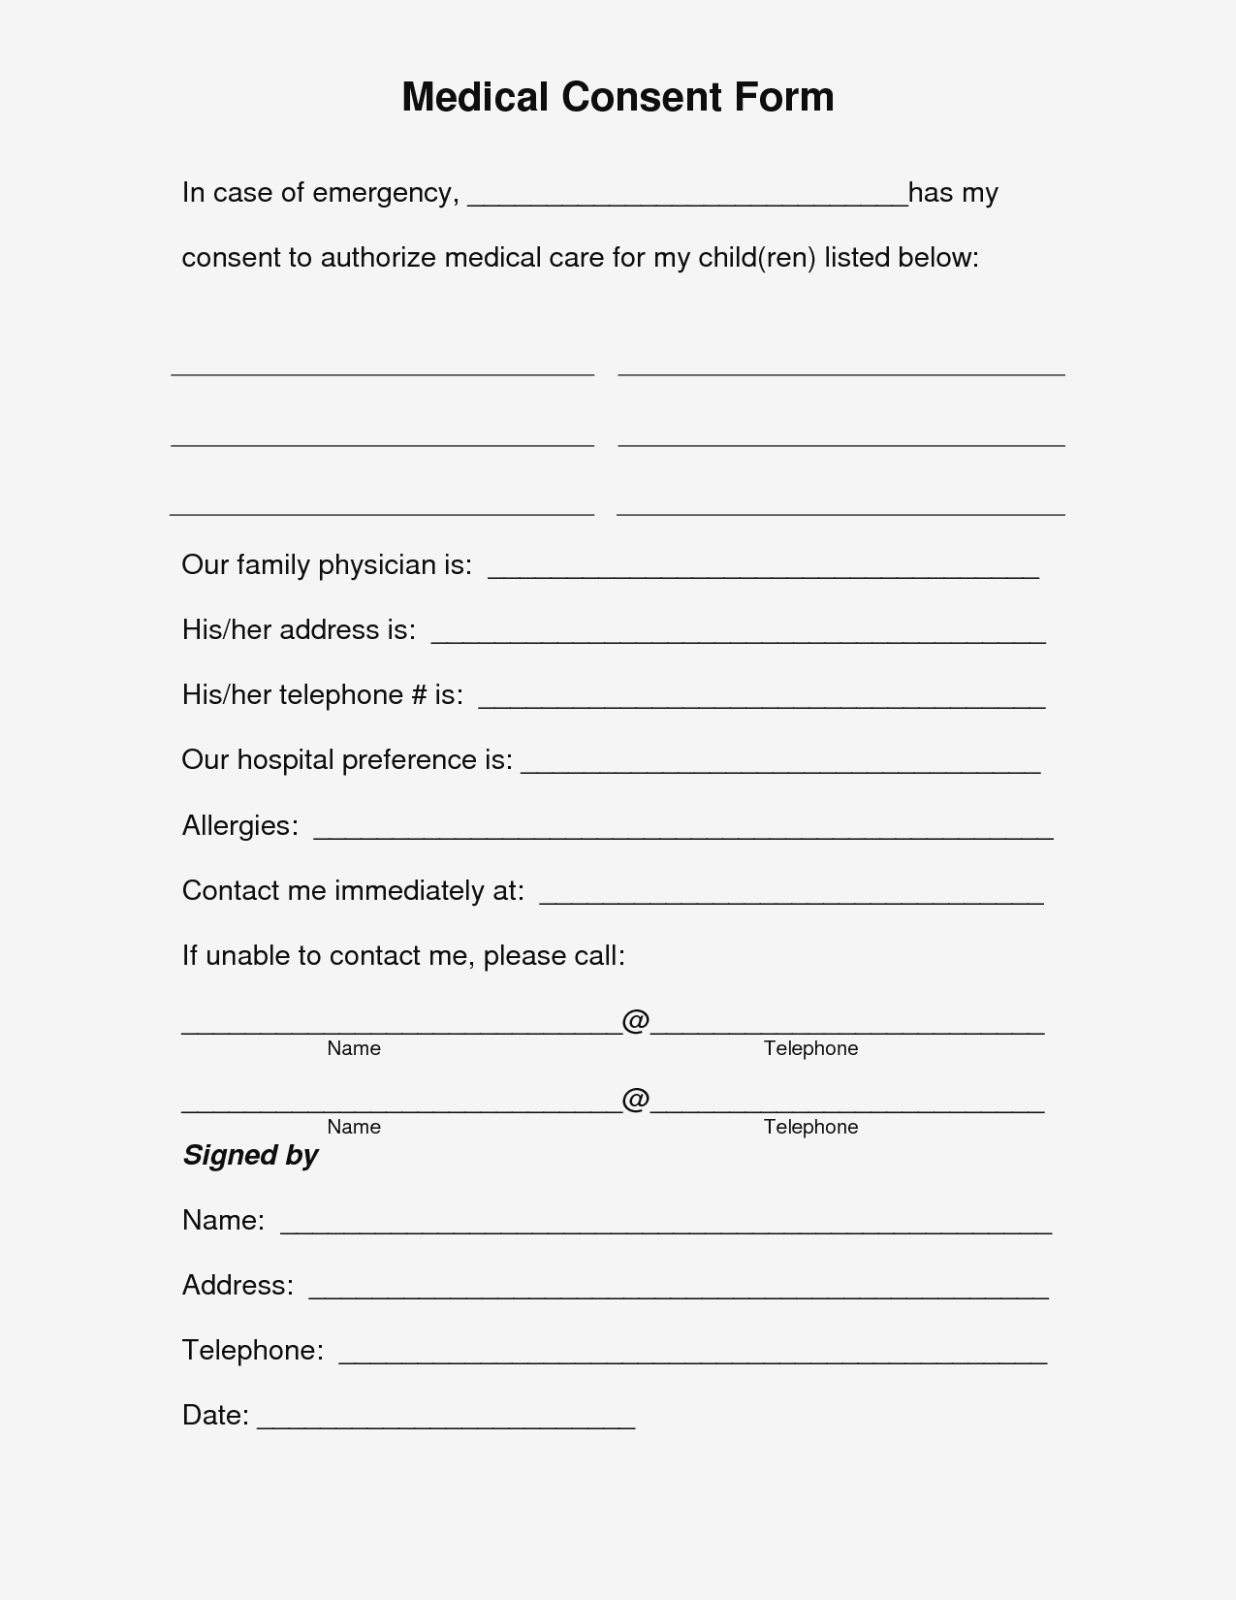 Free Printable Medical Consent Form | Free Medical Consent Form - Free Printable Parenting Plan